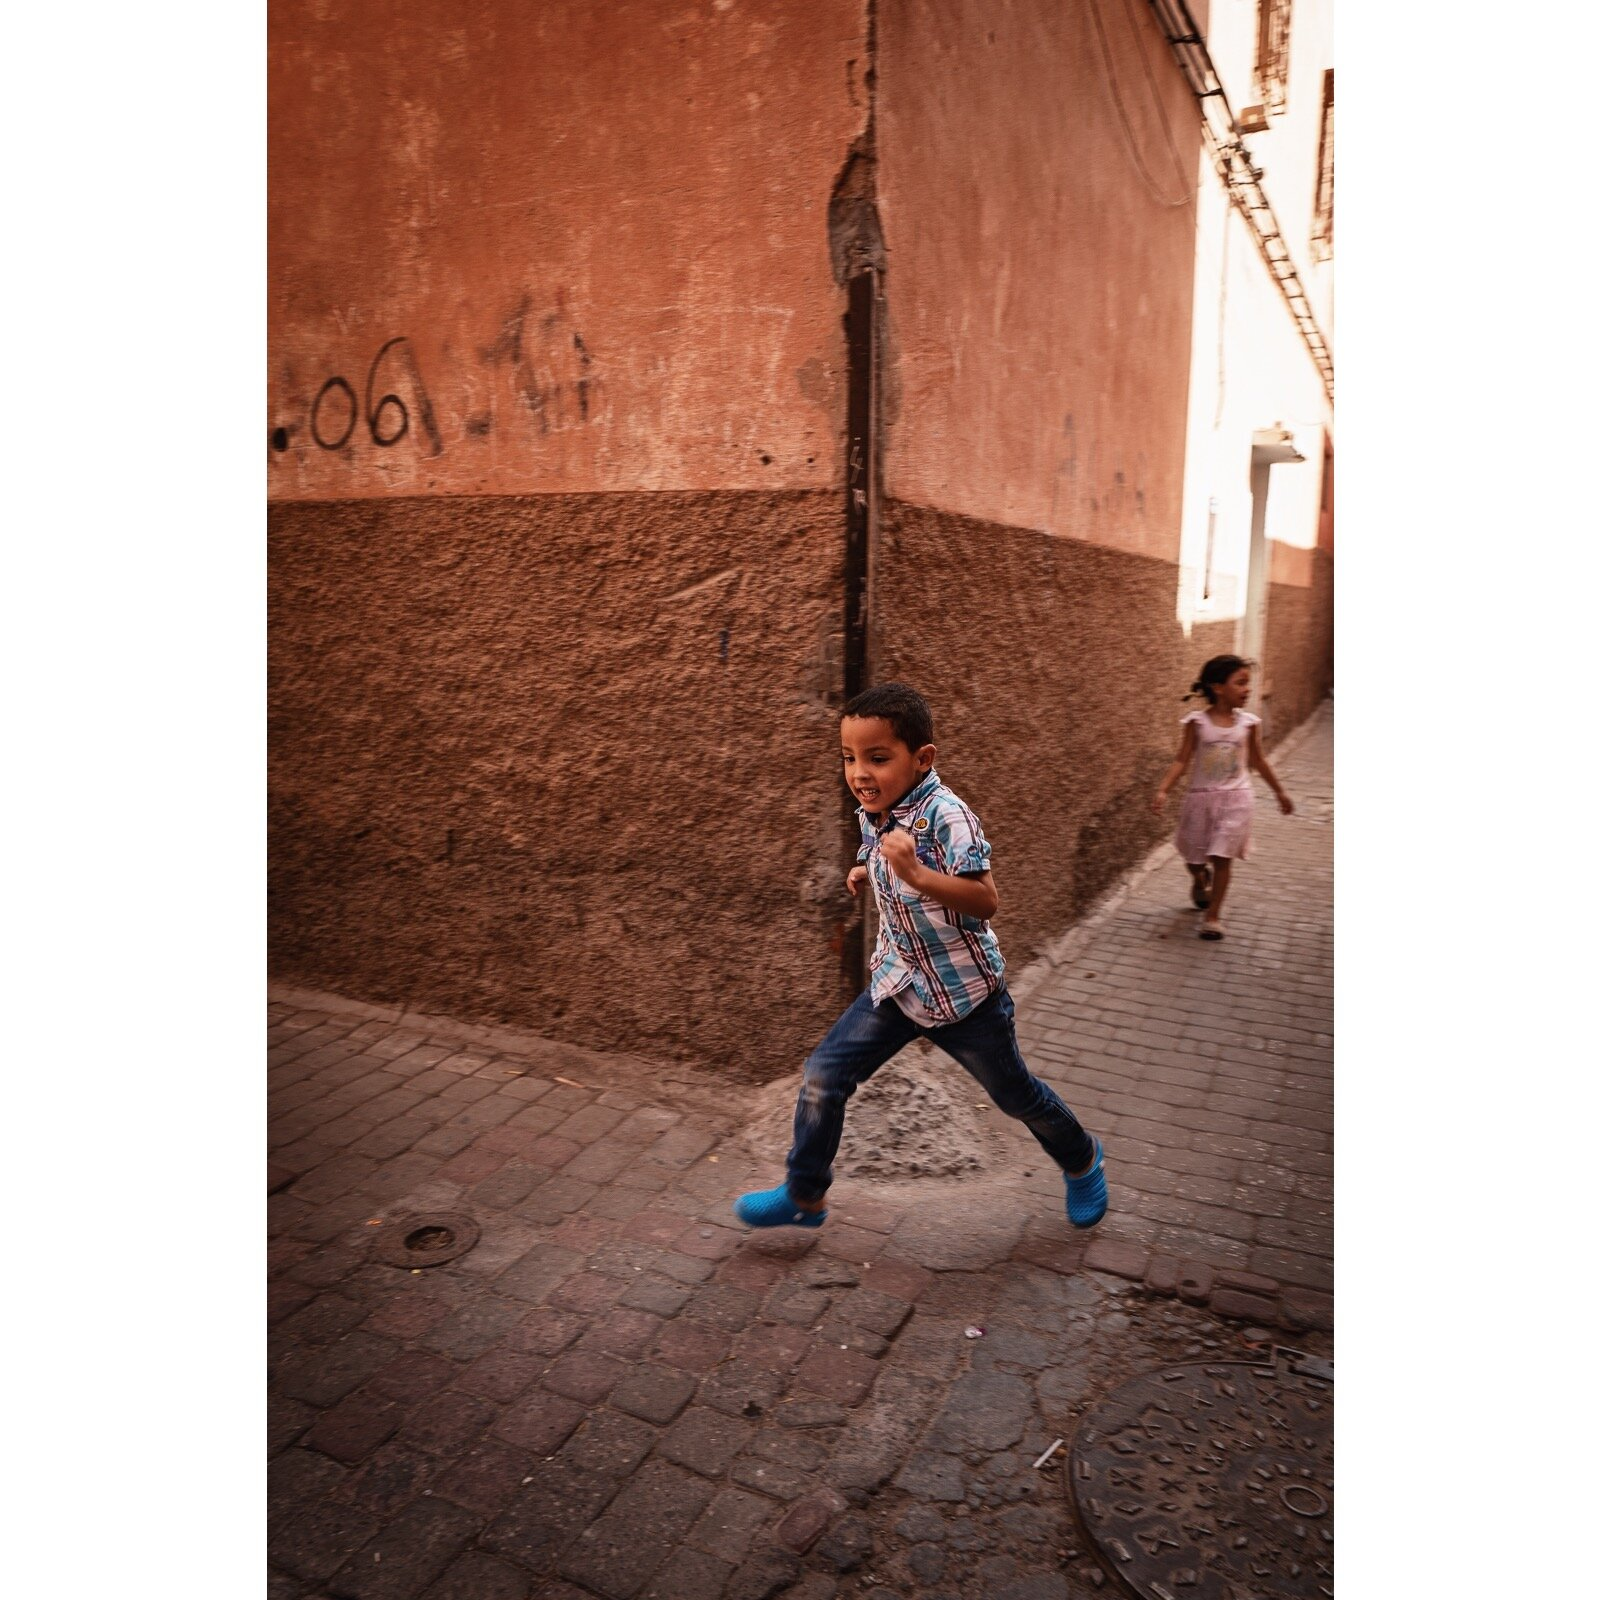 Street life in Marrakech, 2019